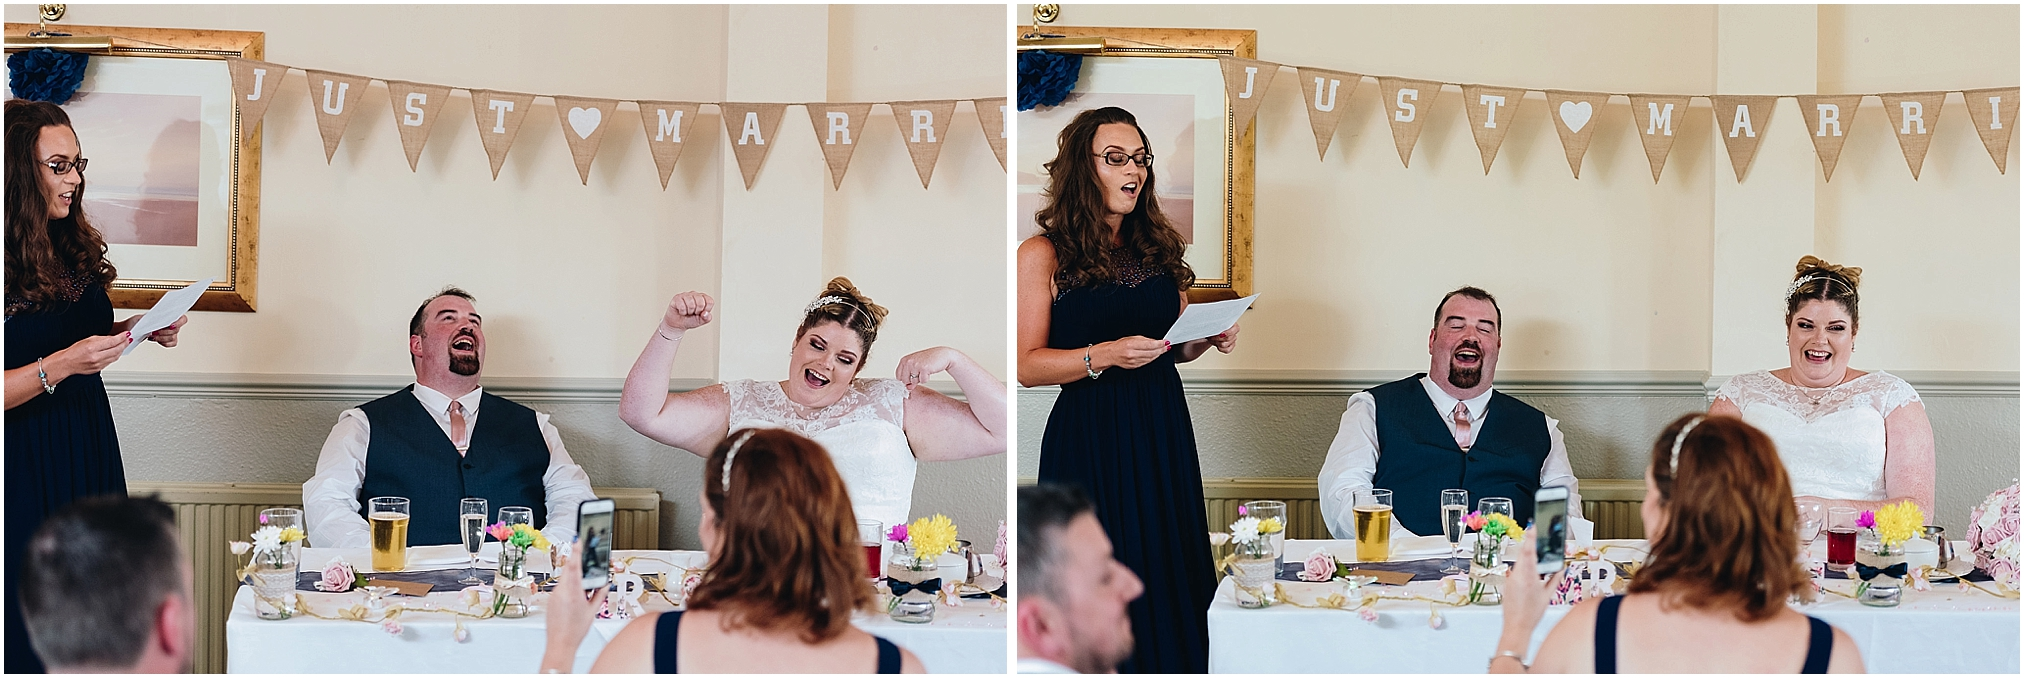 Staffordshire_wedding_photographer-110.jpg